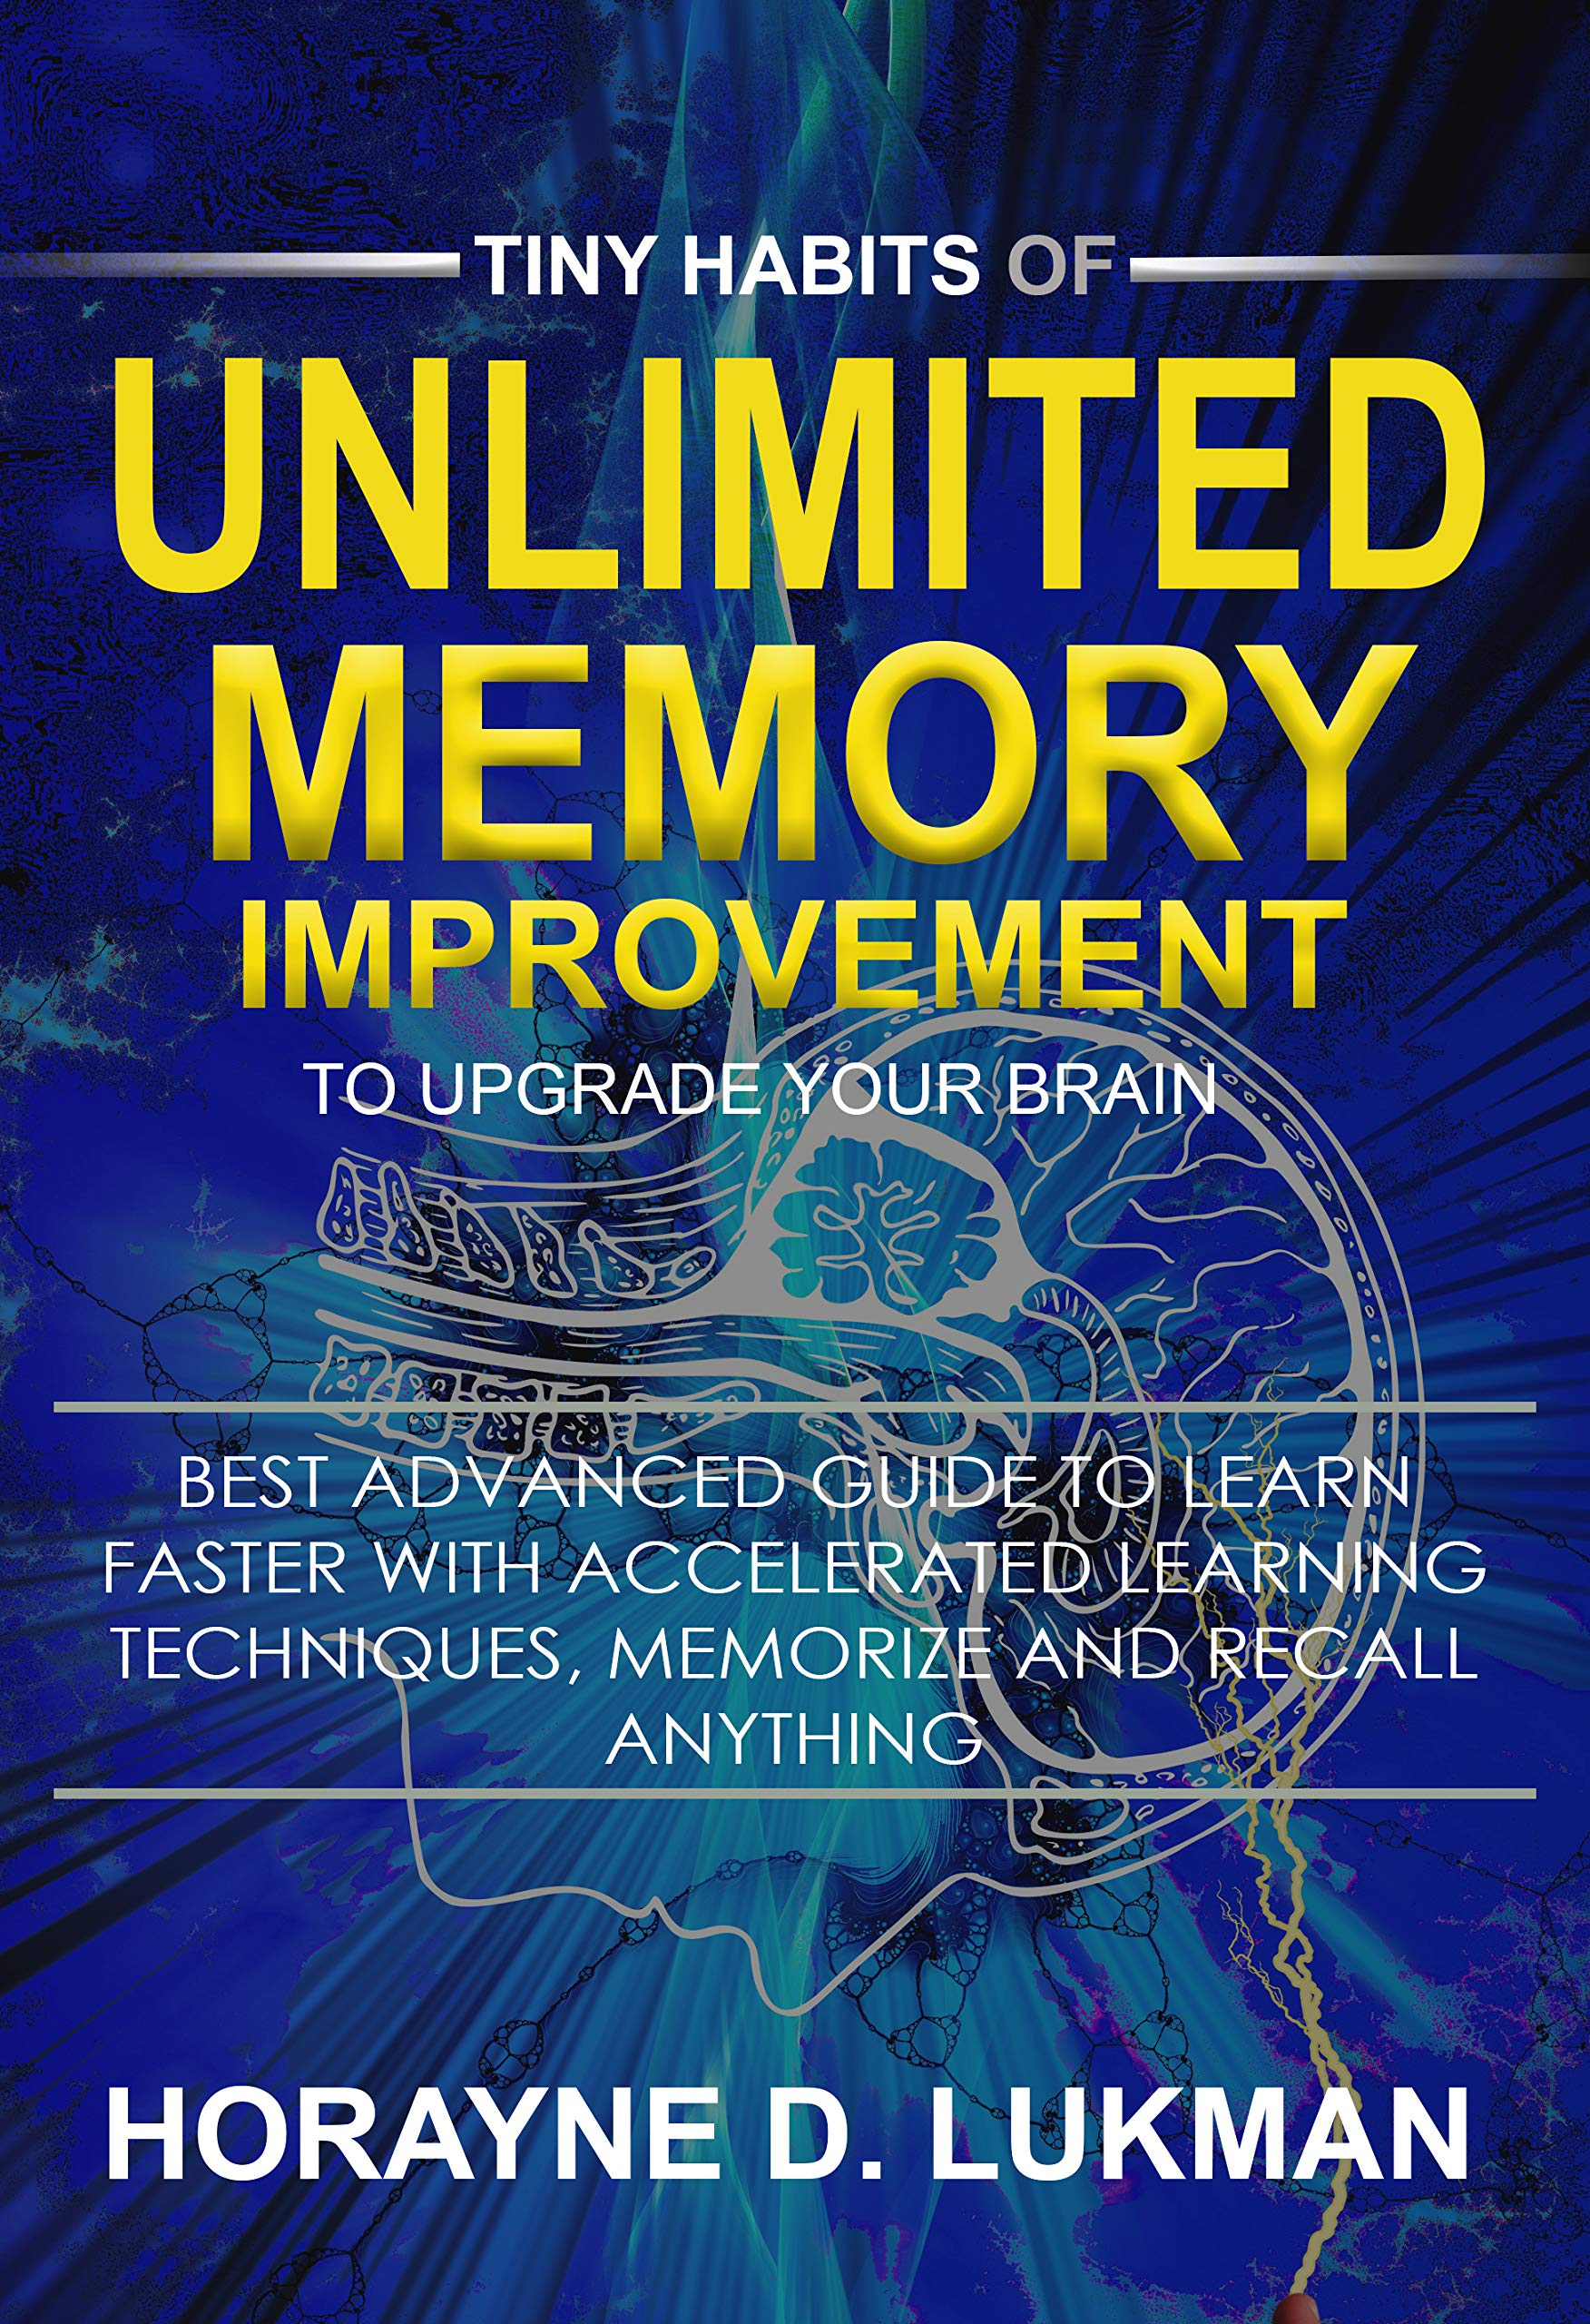 Tiny Habits of Unlimited Memory Improvement to Upgrade your brain: Best Advanced Guide to Learn Faster with Accelerated Learning Techniques, Memorize and recall anything. (Memory Books Book 1)